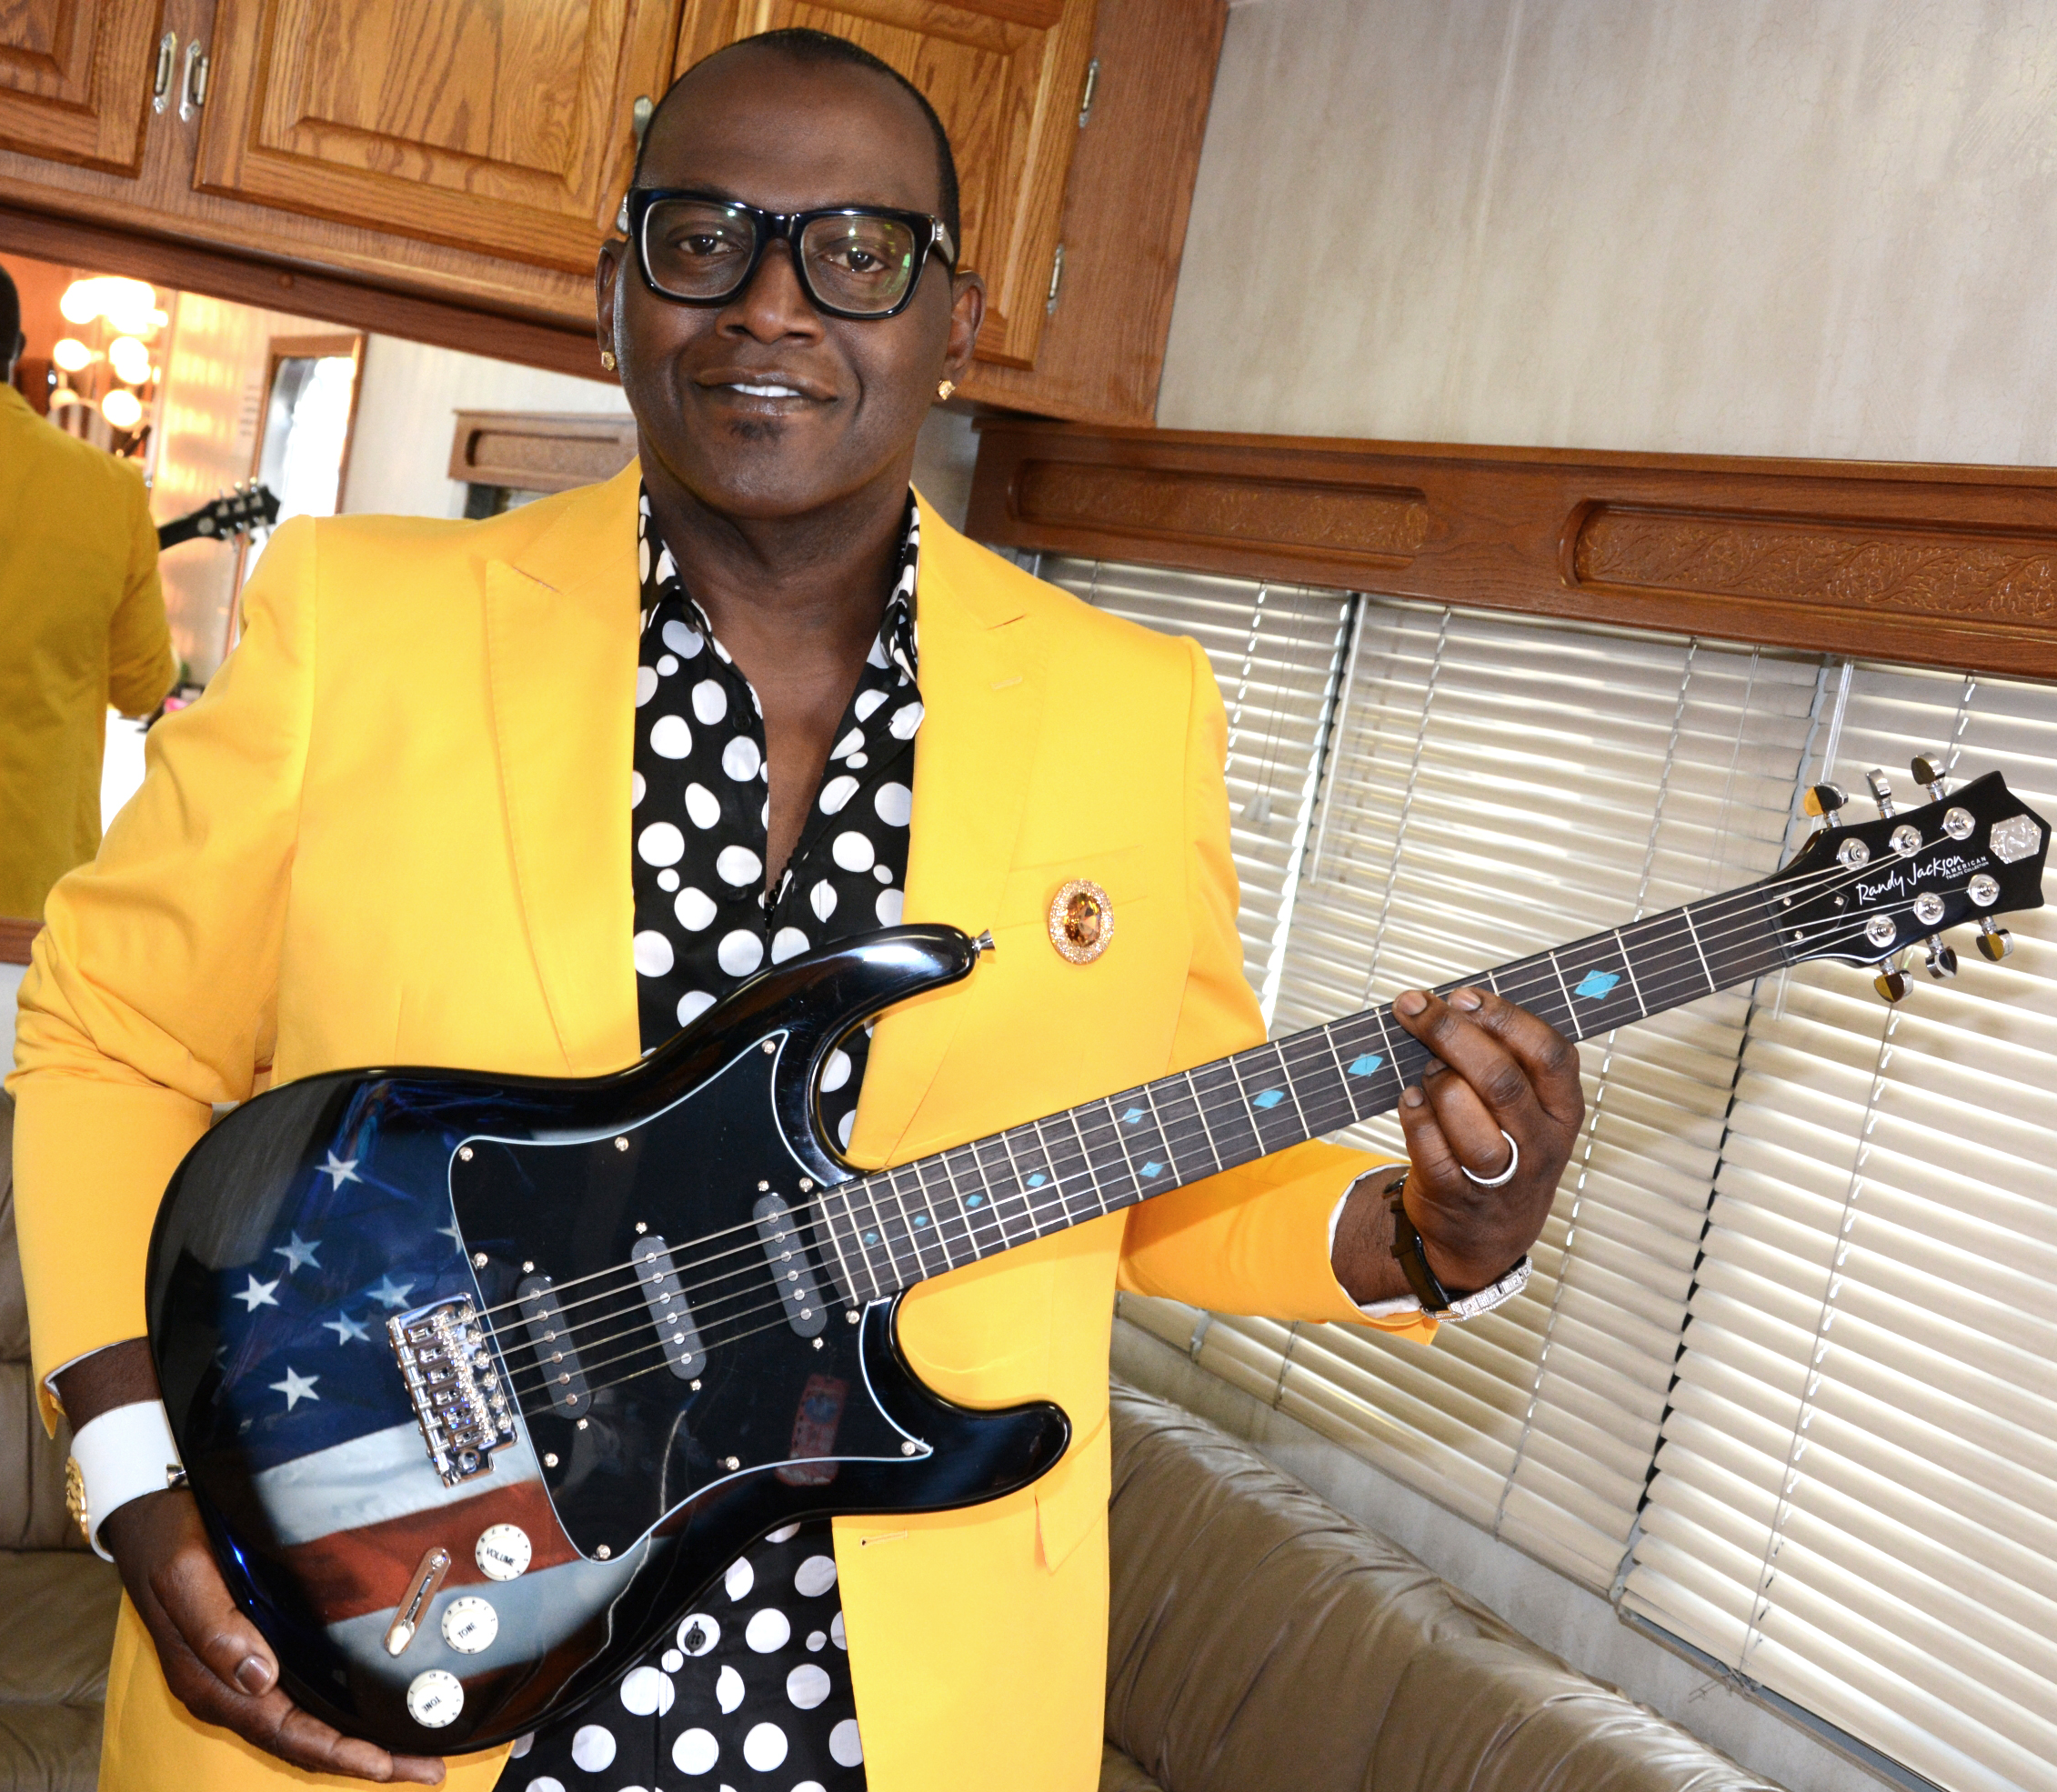 Randy Jackson with his new American Tribute Guitar, available on HSN May 25th.